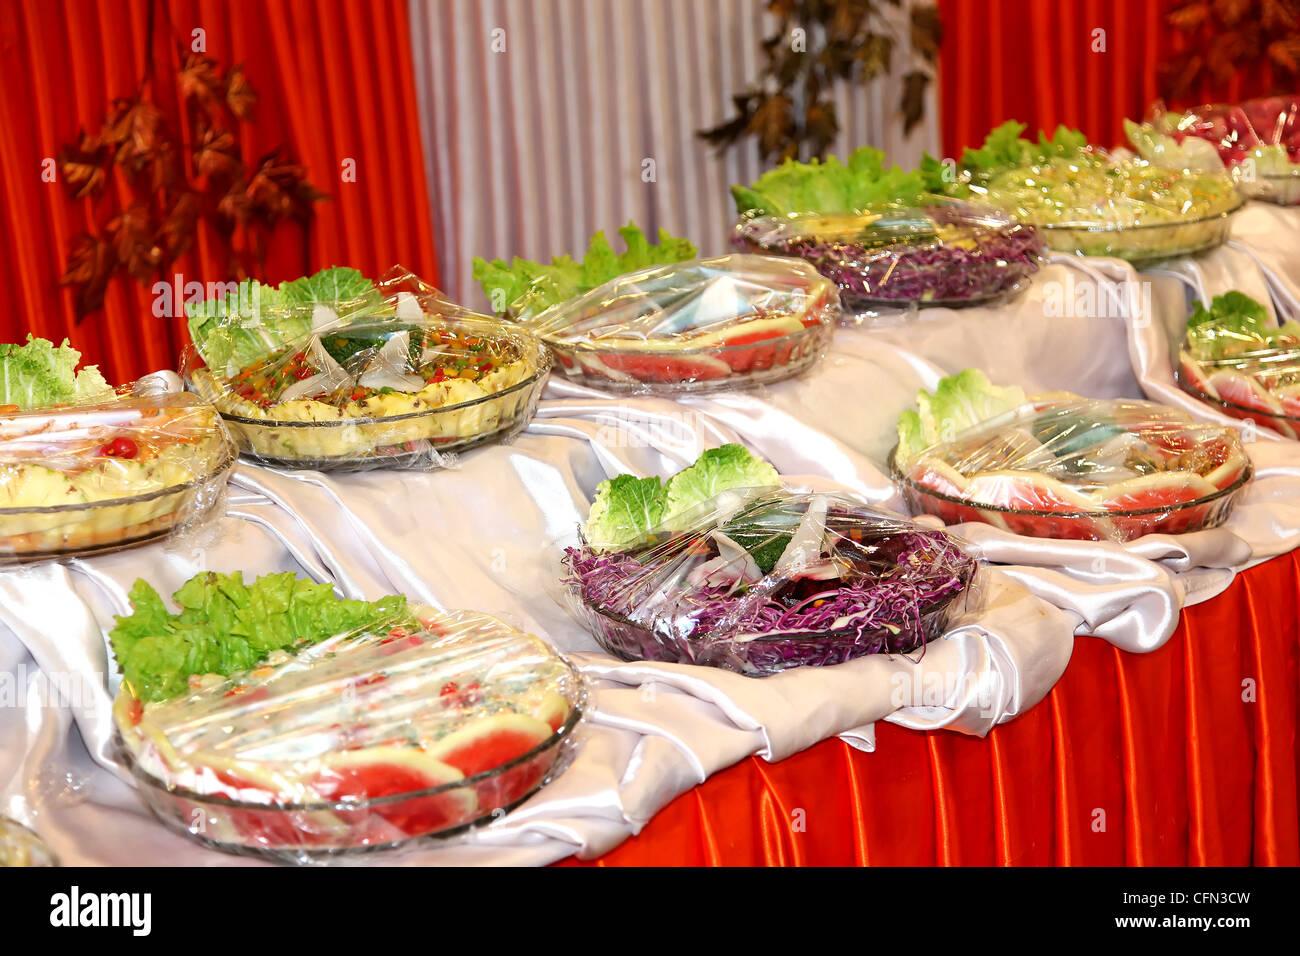 Dining Table With Food food salad colorful decoration desserts dinner nutritious healthy